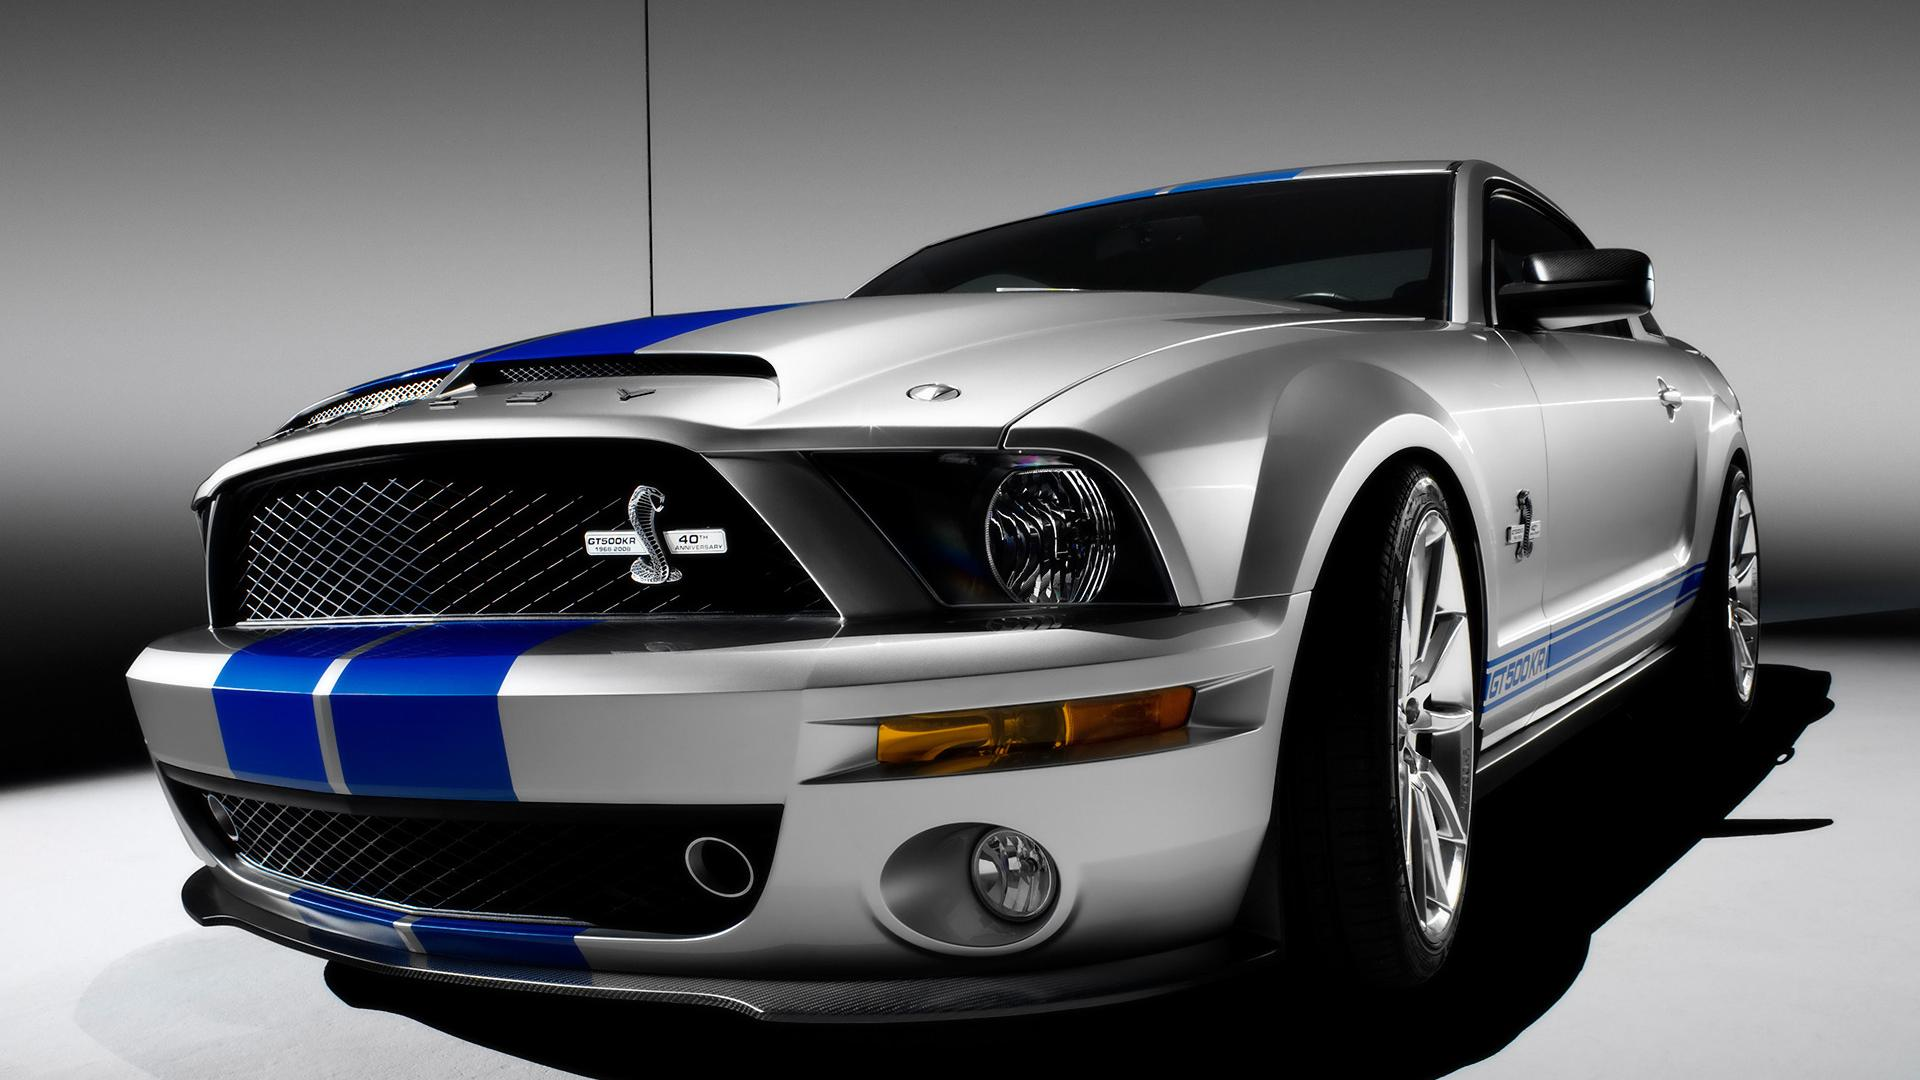 Ford mustang gt wallpapers high quality download free - Ford mustang wallpaper download ...